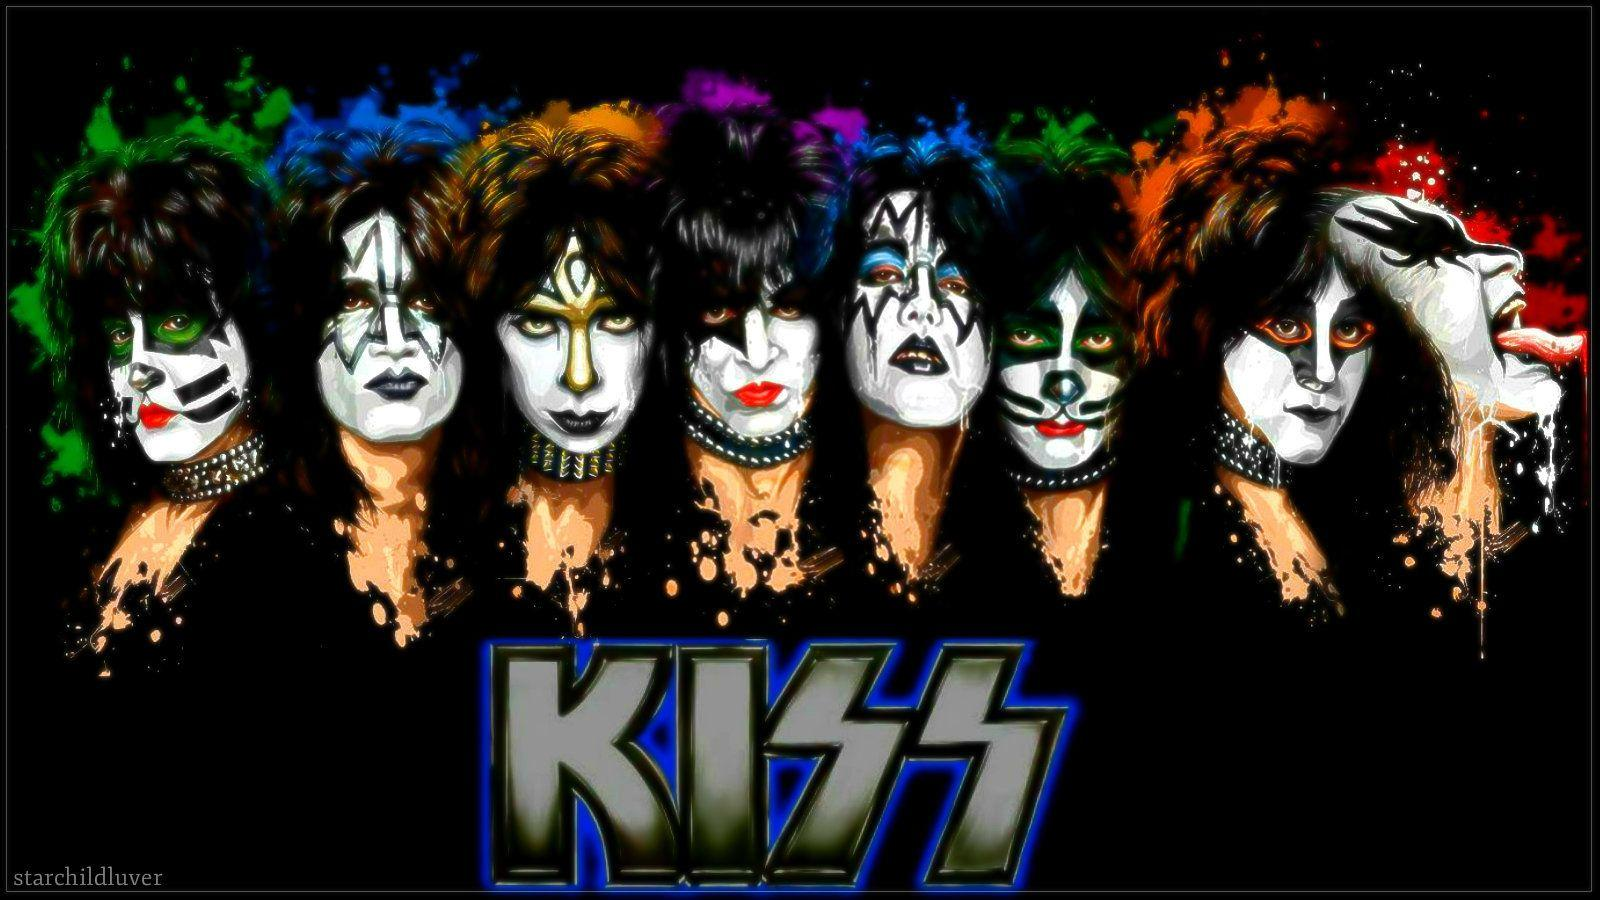 Battle of the Kiss Army Wp2202991